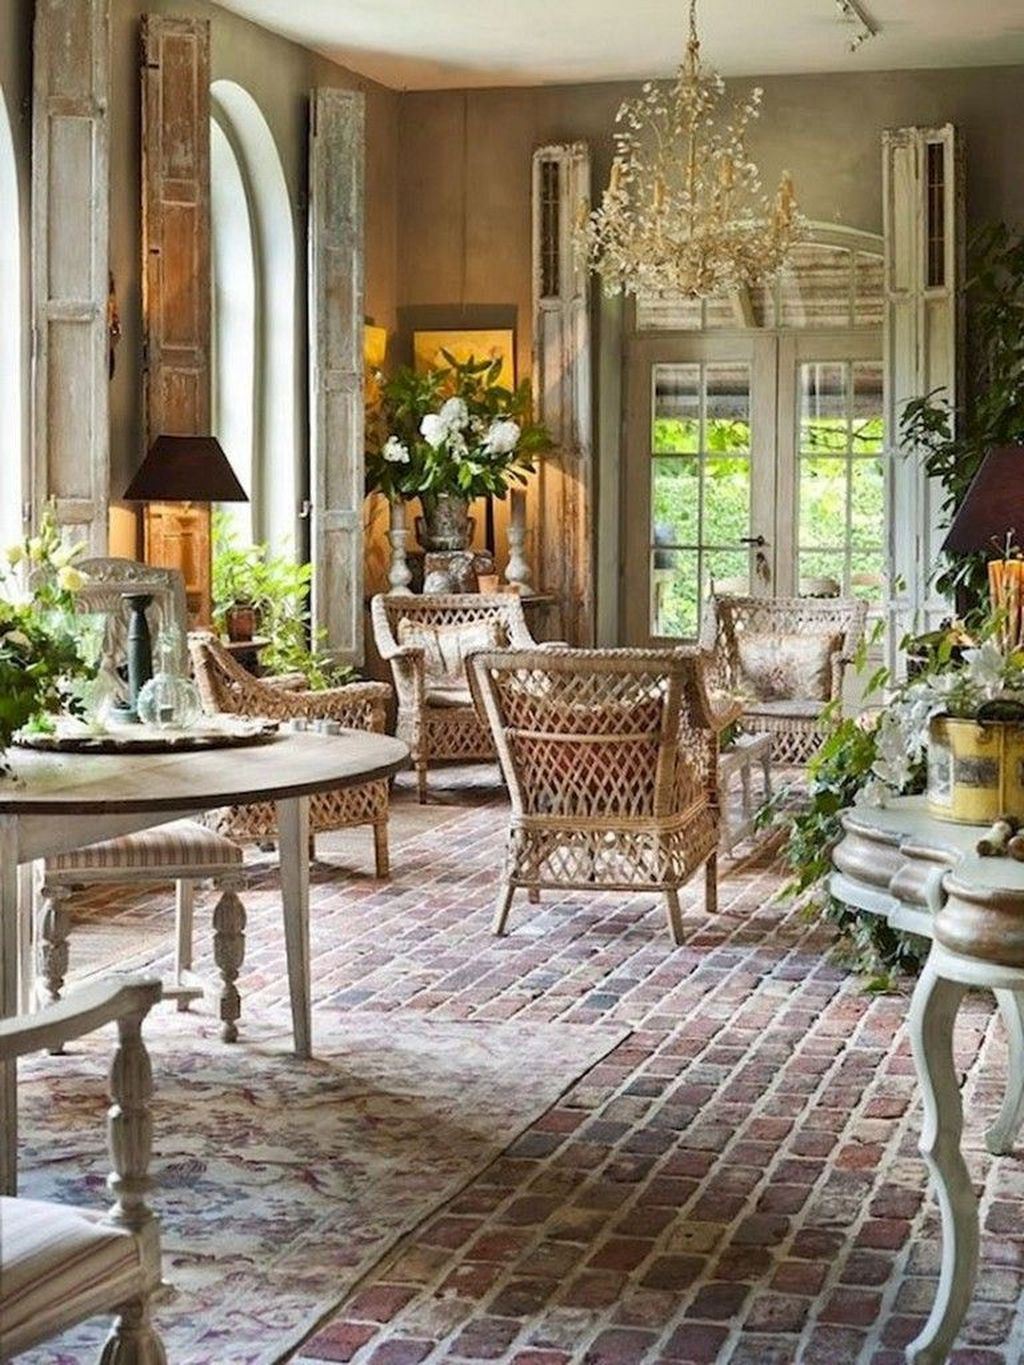 The Best Country Style Interior Design Ideas 16